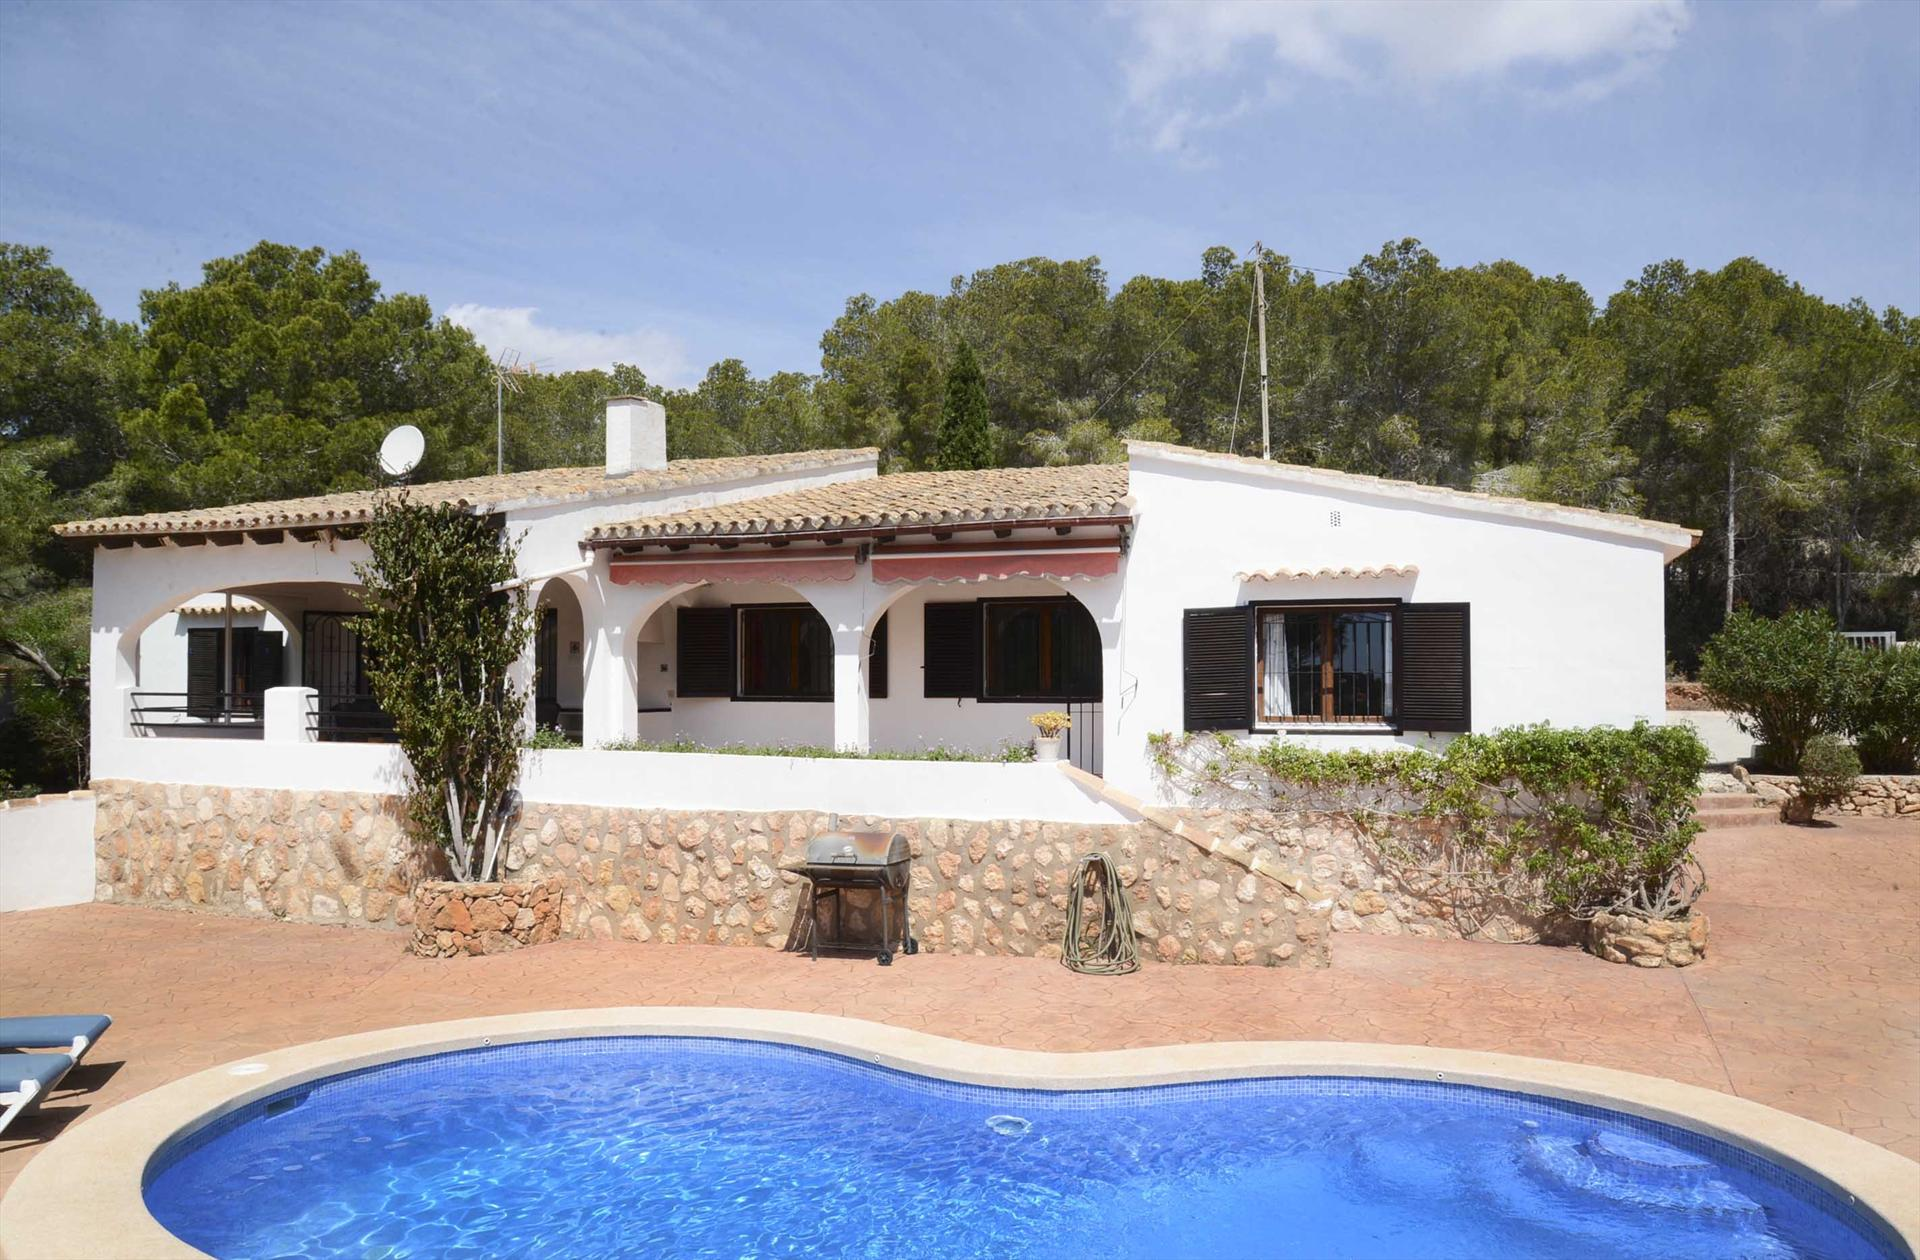 Villa La Pinada 6, Villa in Benissa, on the Costa Blanca, Spain  with private pool for 6 persons.....